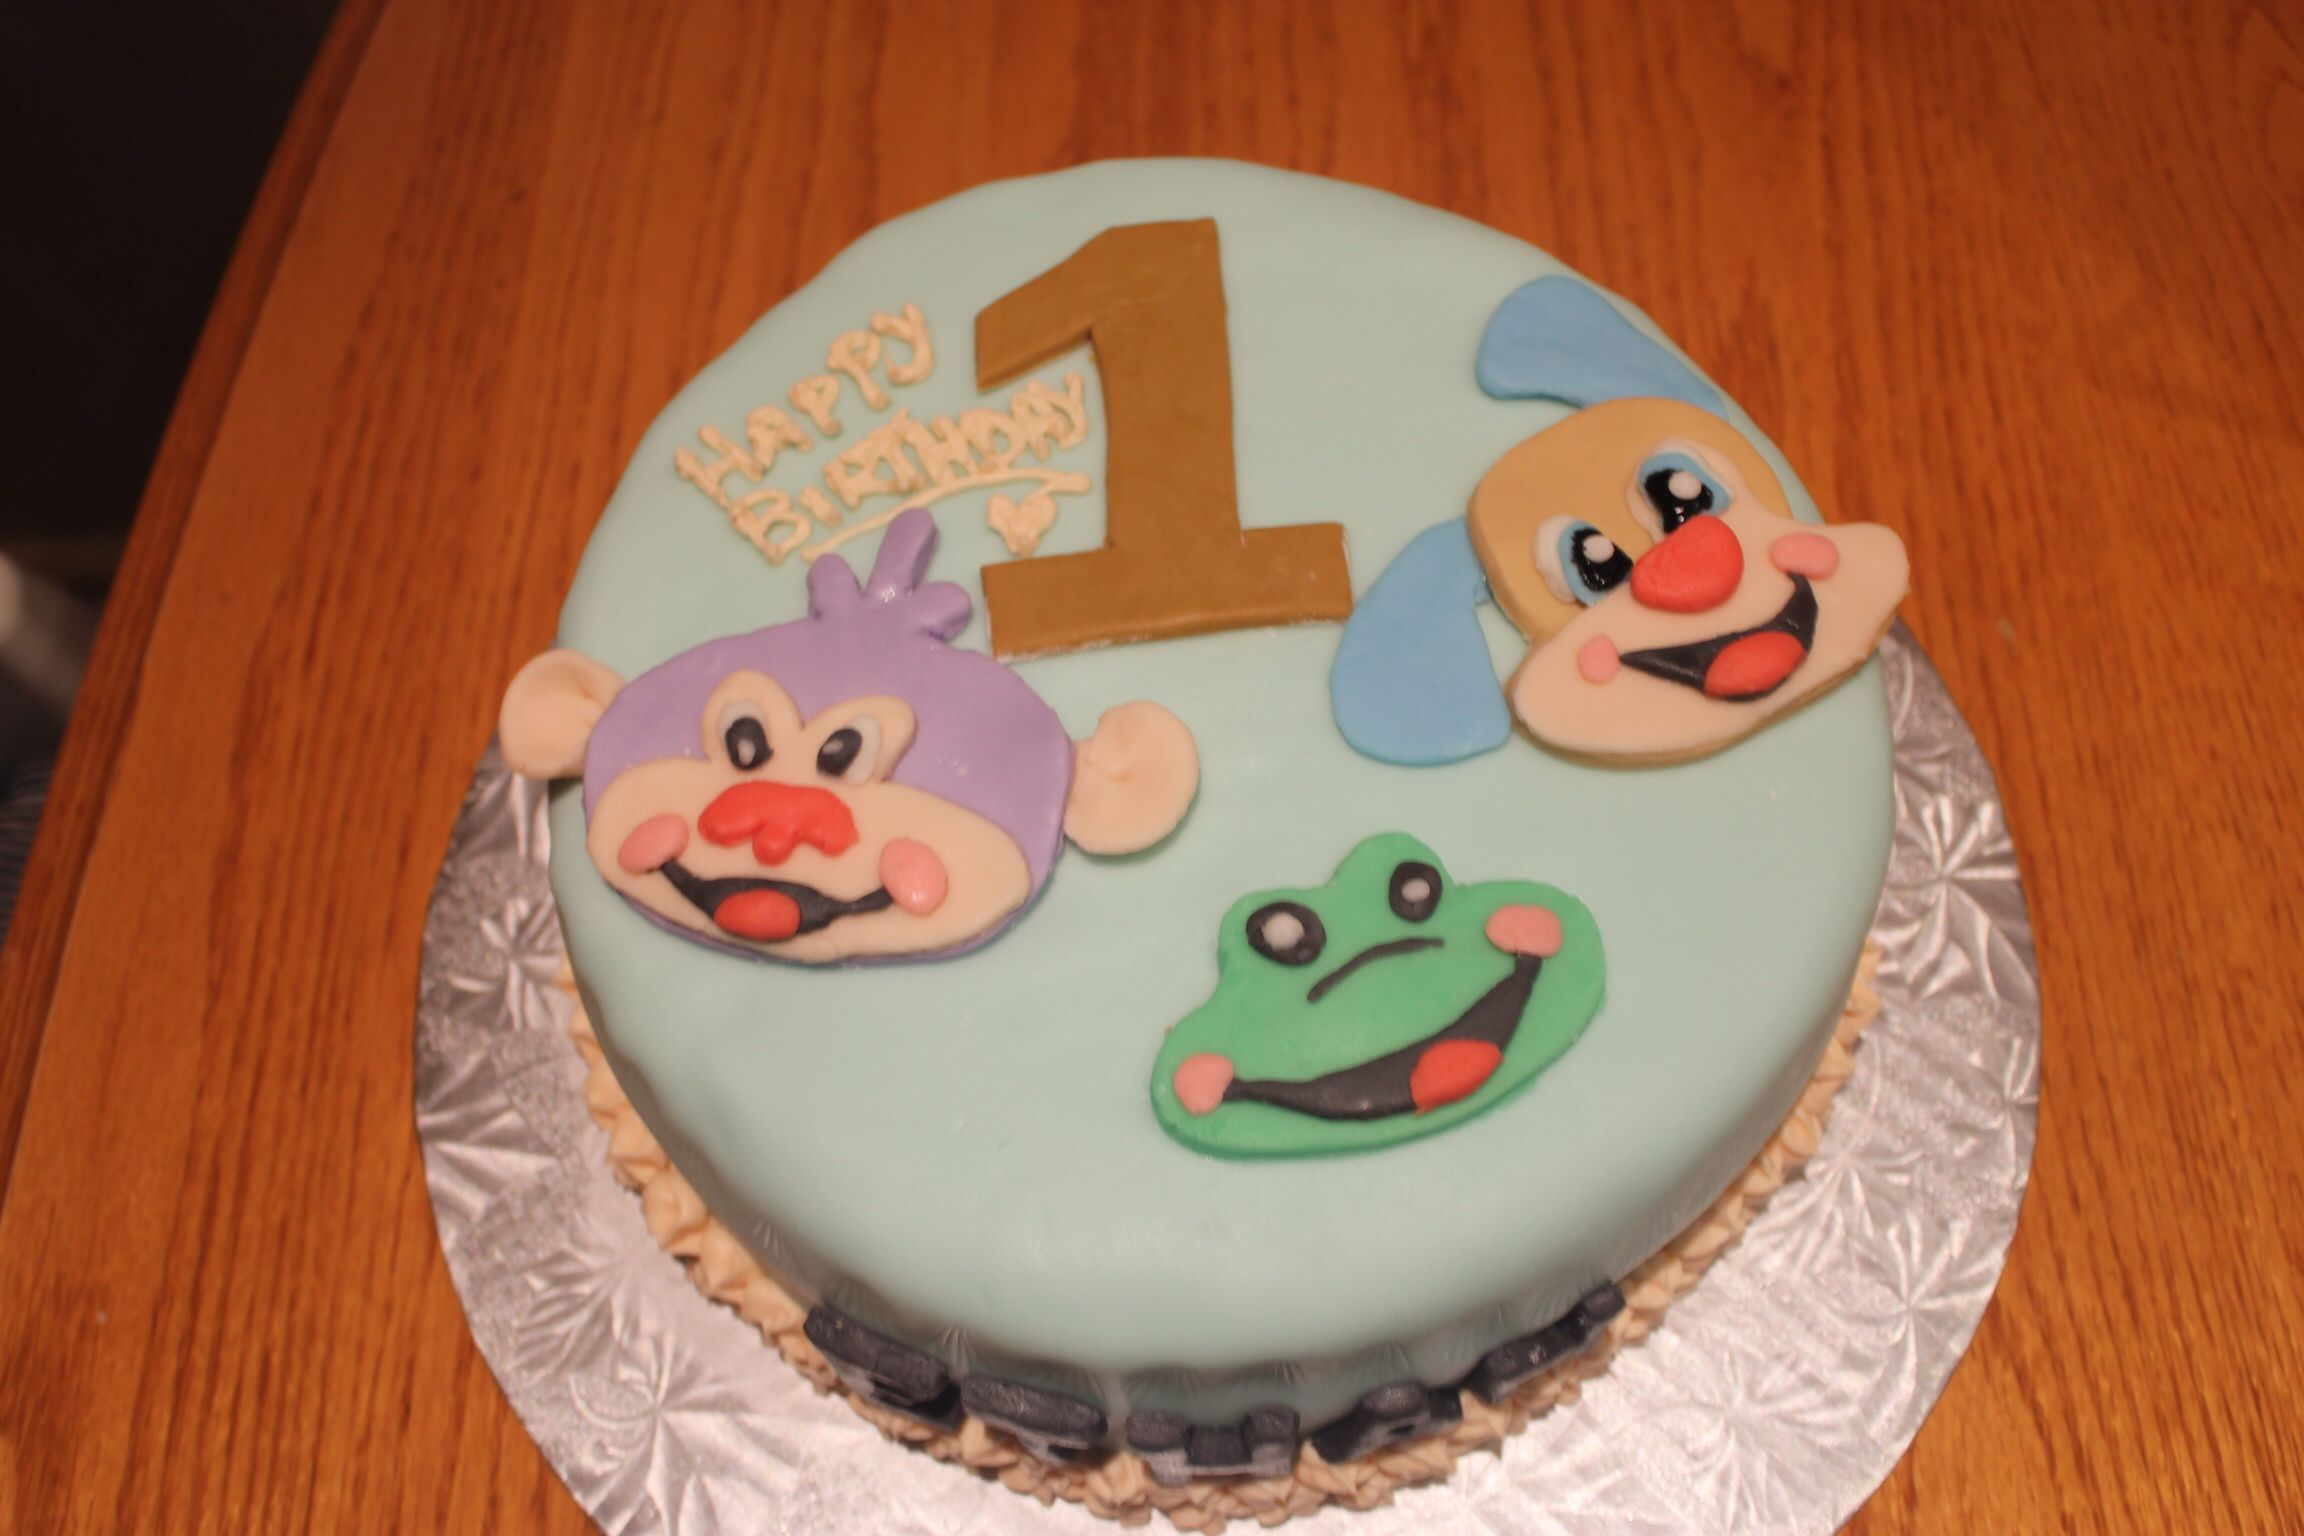 Wondrous Fisher Price Laugh And Learn Birthday Cake I Made This For My Personalised Birthday Cards Beptaeletsinfo